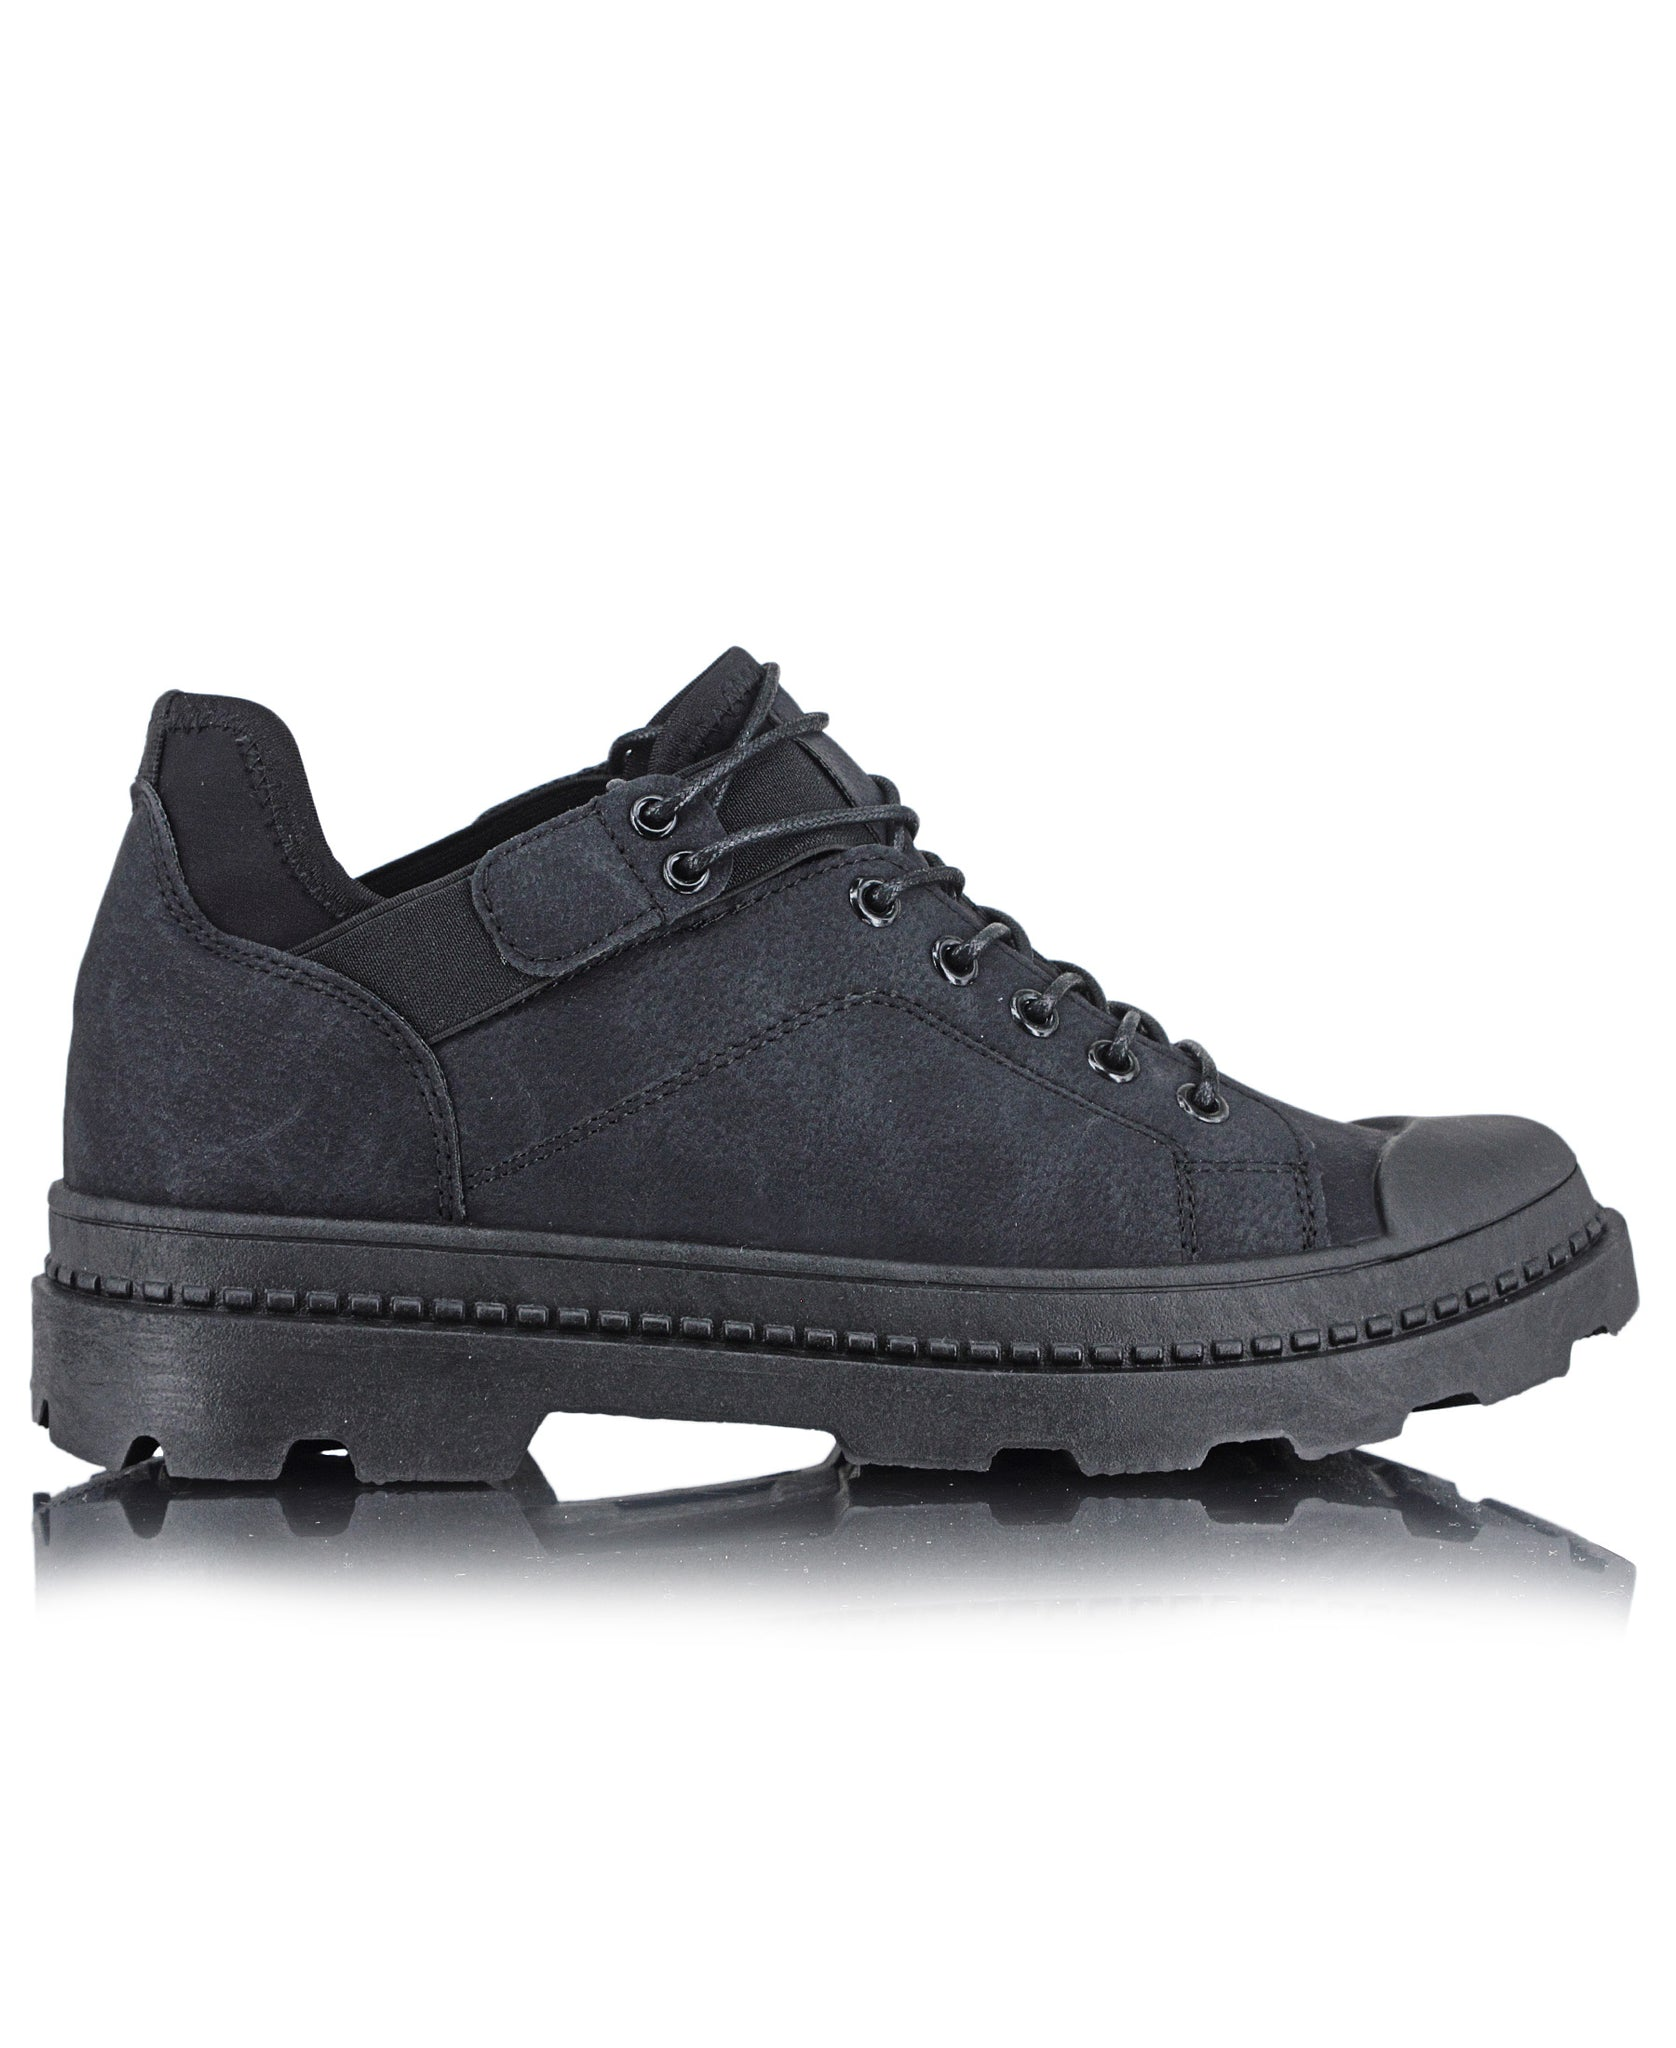 Men's Patrol - Black